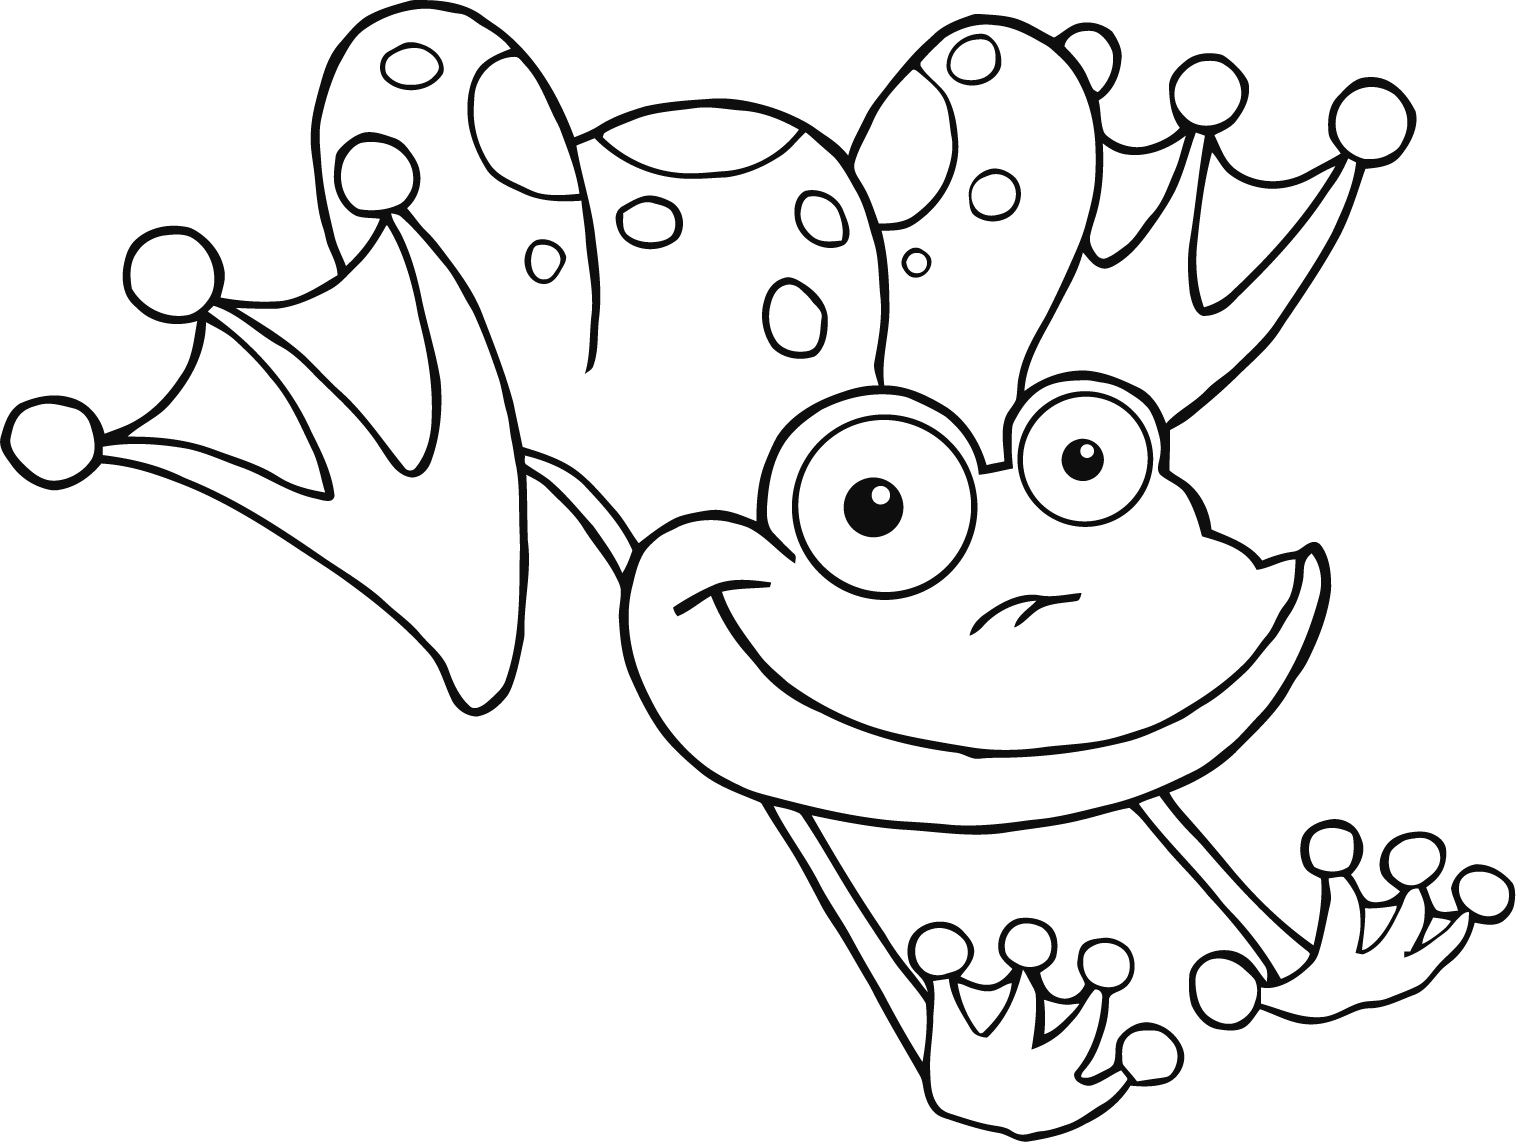 frog to color printable frog coloring pages for kids free printable frog to frog color